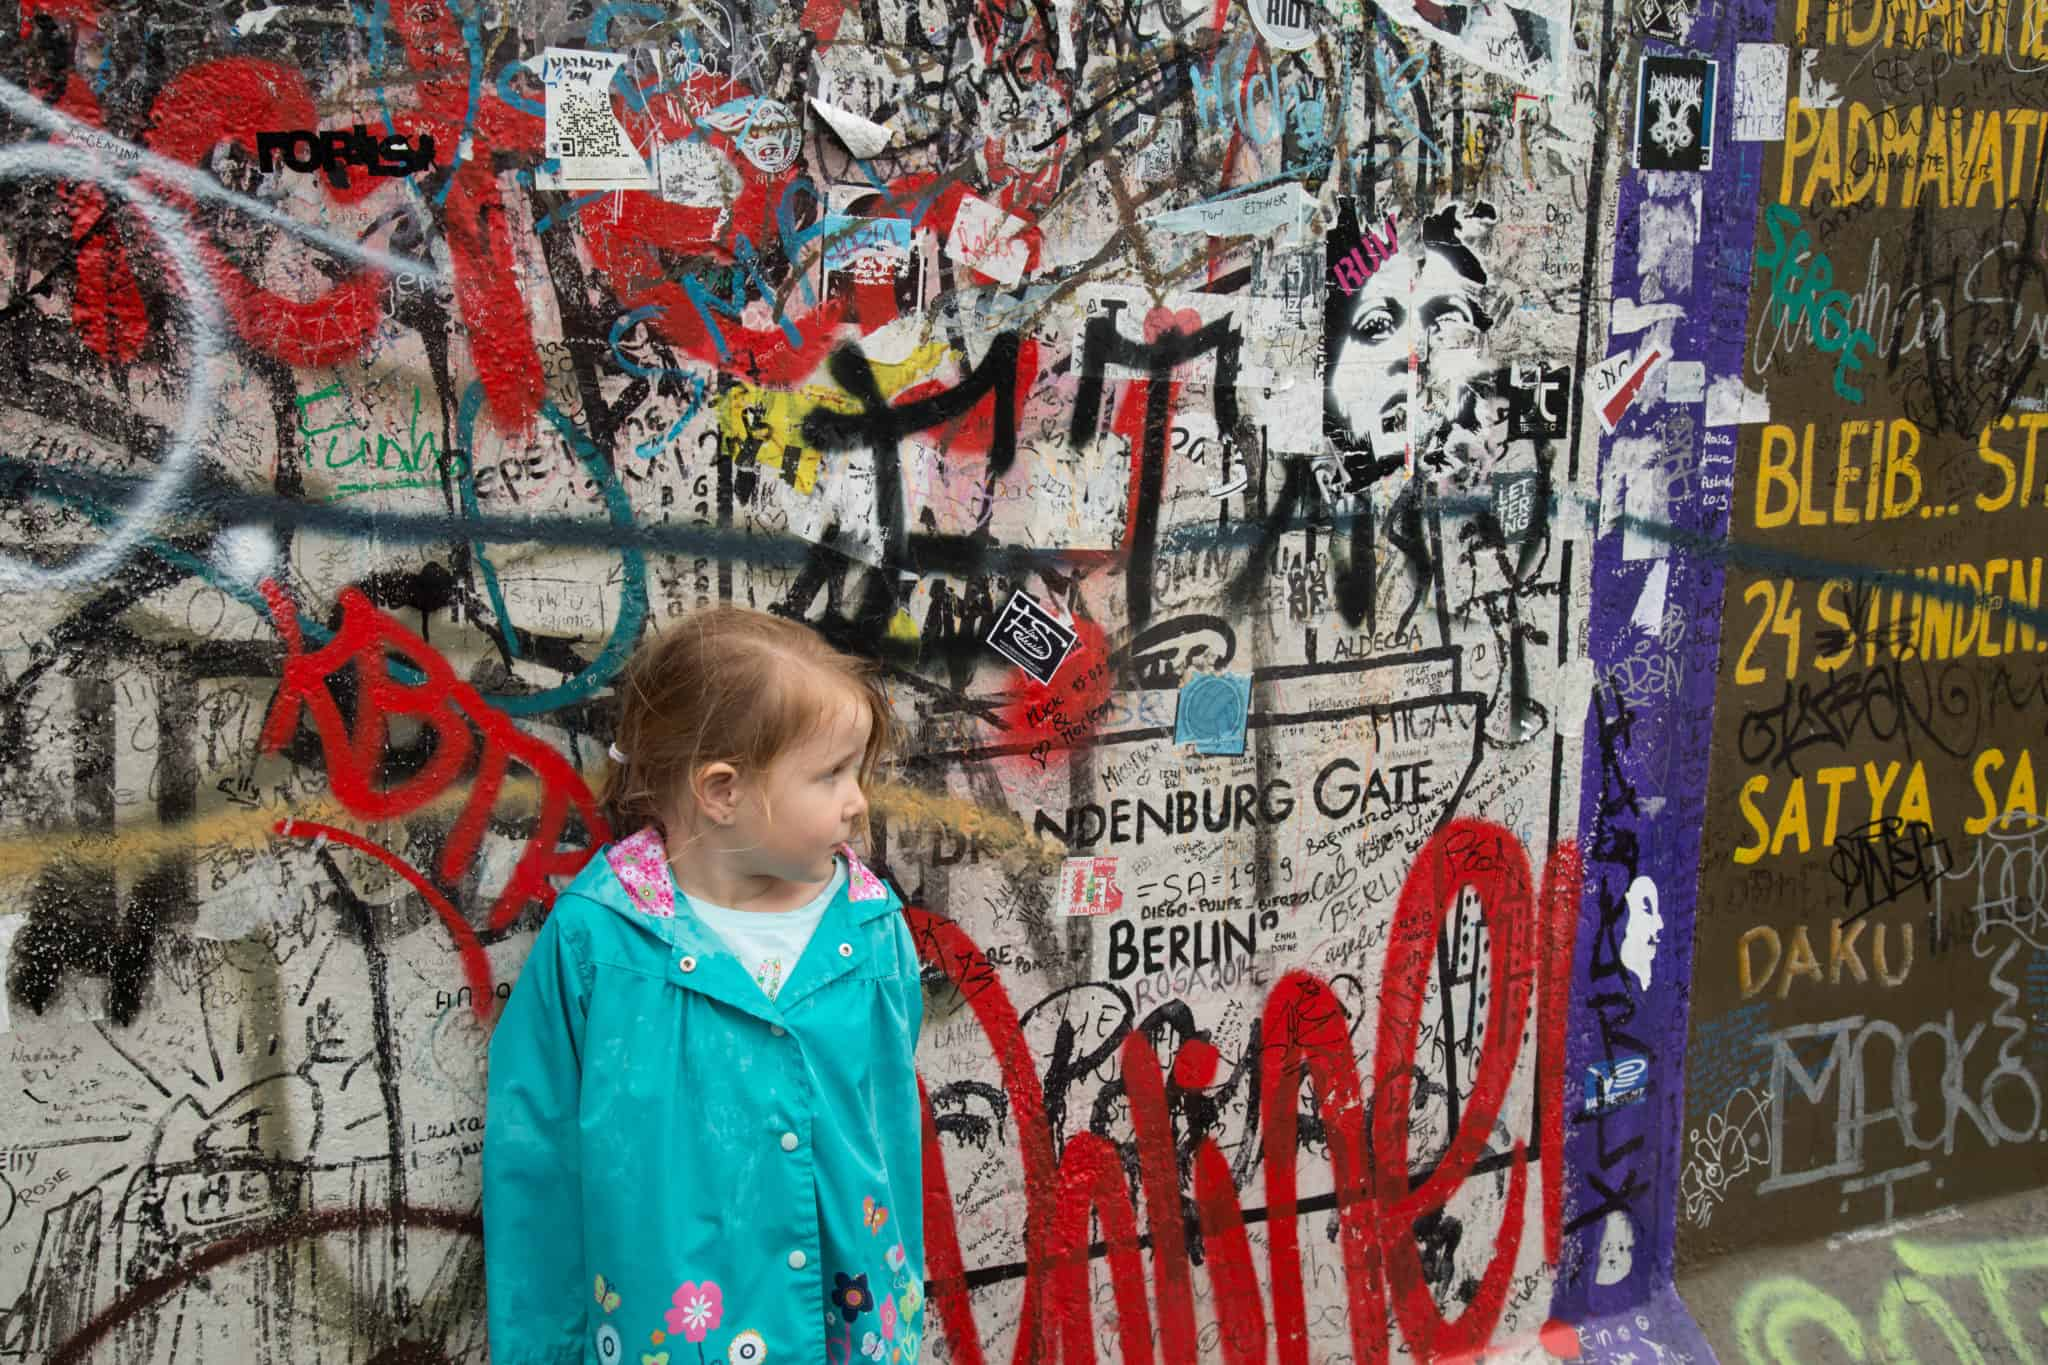 TravelwithMeraki- Travel with kids - Berlin Wall - Berlin - Germany